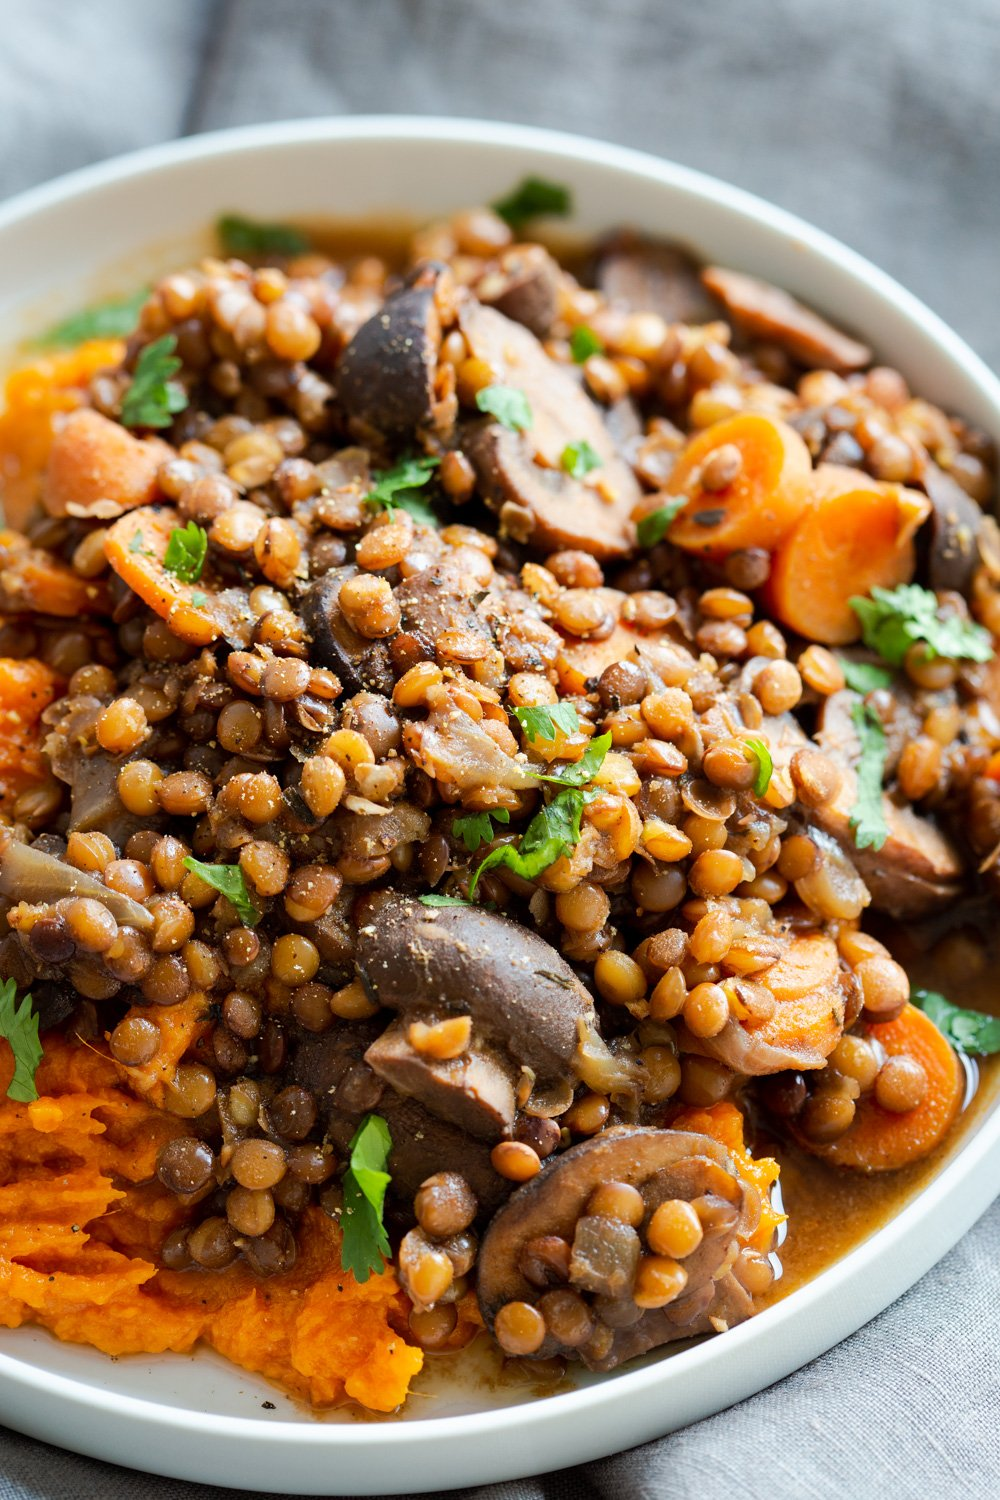 Instant Pot Lentil Mushroom Stew with Easy Mashed Sweet Potatoes. 1 Pot 30 Minute. Upside down Lentil Shepherds Pie! #VeganRicha #Vegan #Glutenfee #Nutfree #soyfree #Recipe Stovetop option